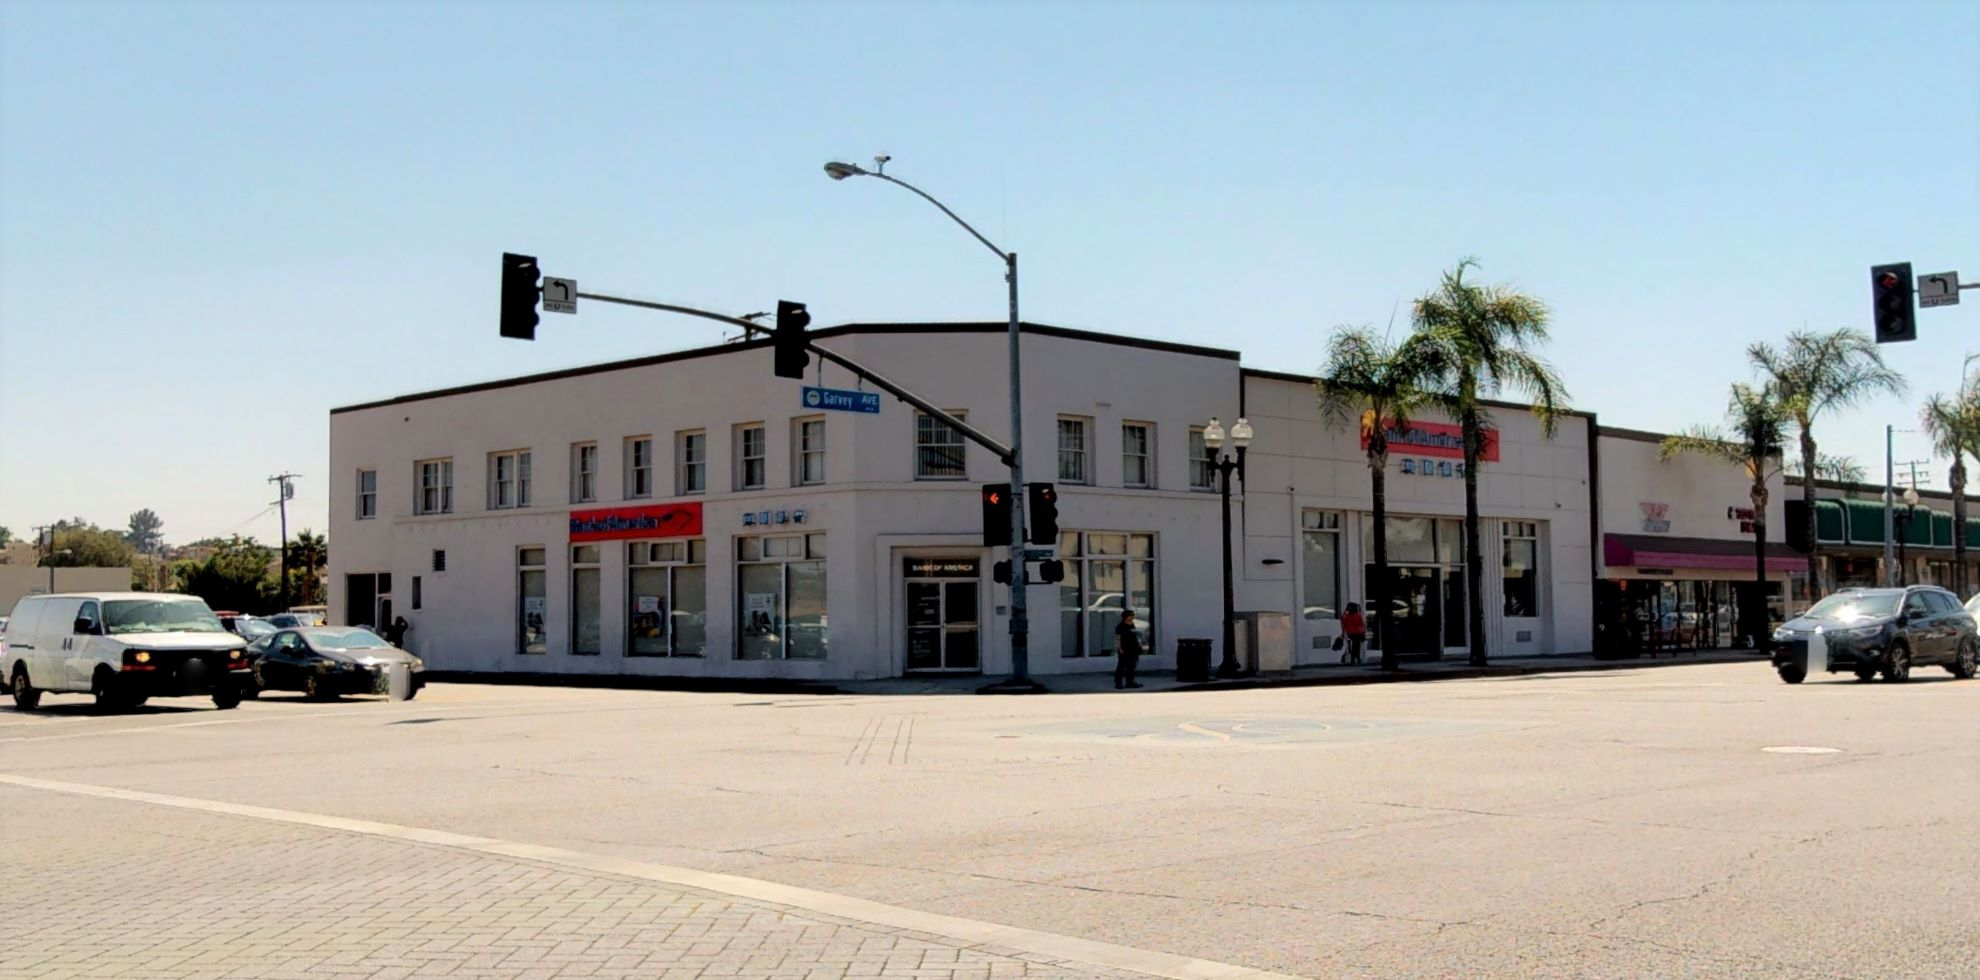 Bank of America financial center with walk-up ATM | 110 W Garvey Ave, Monterey Park, CA 91754